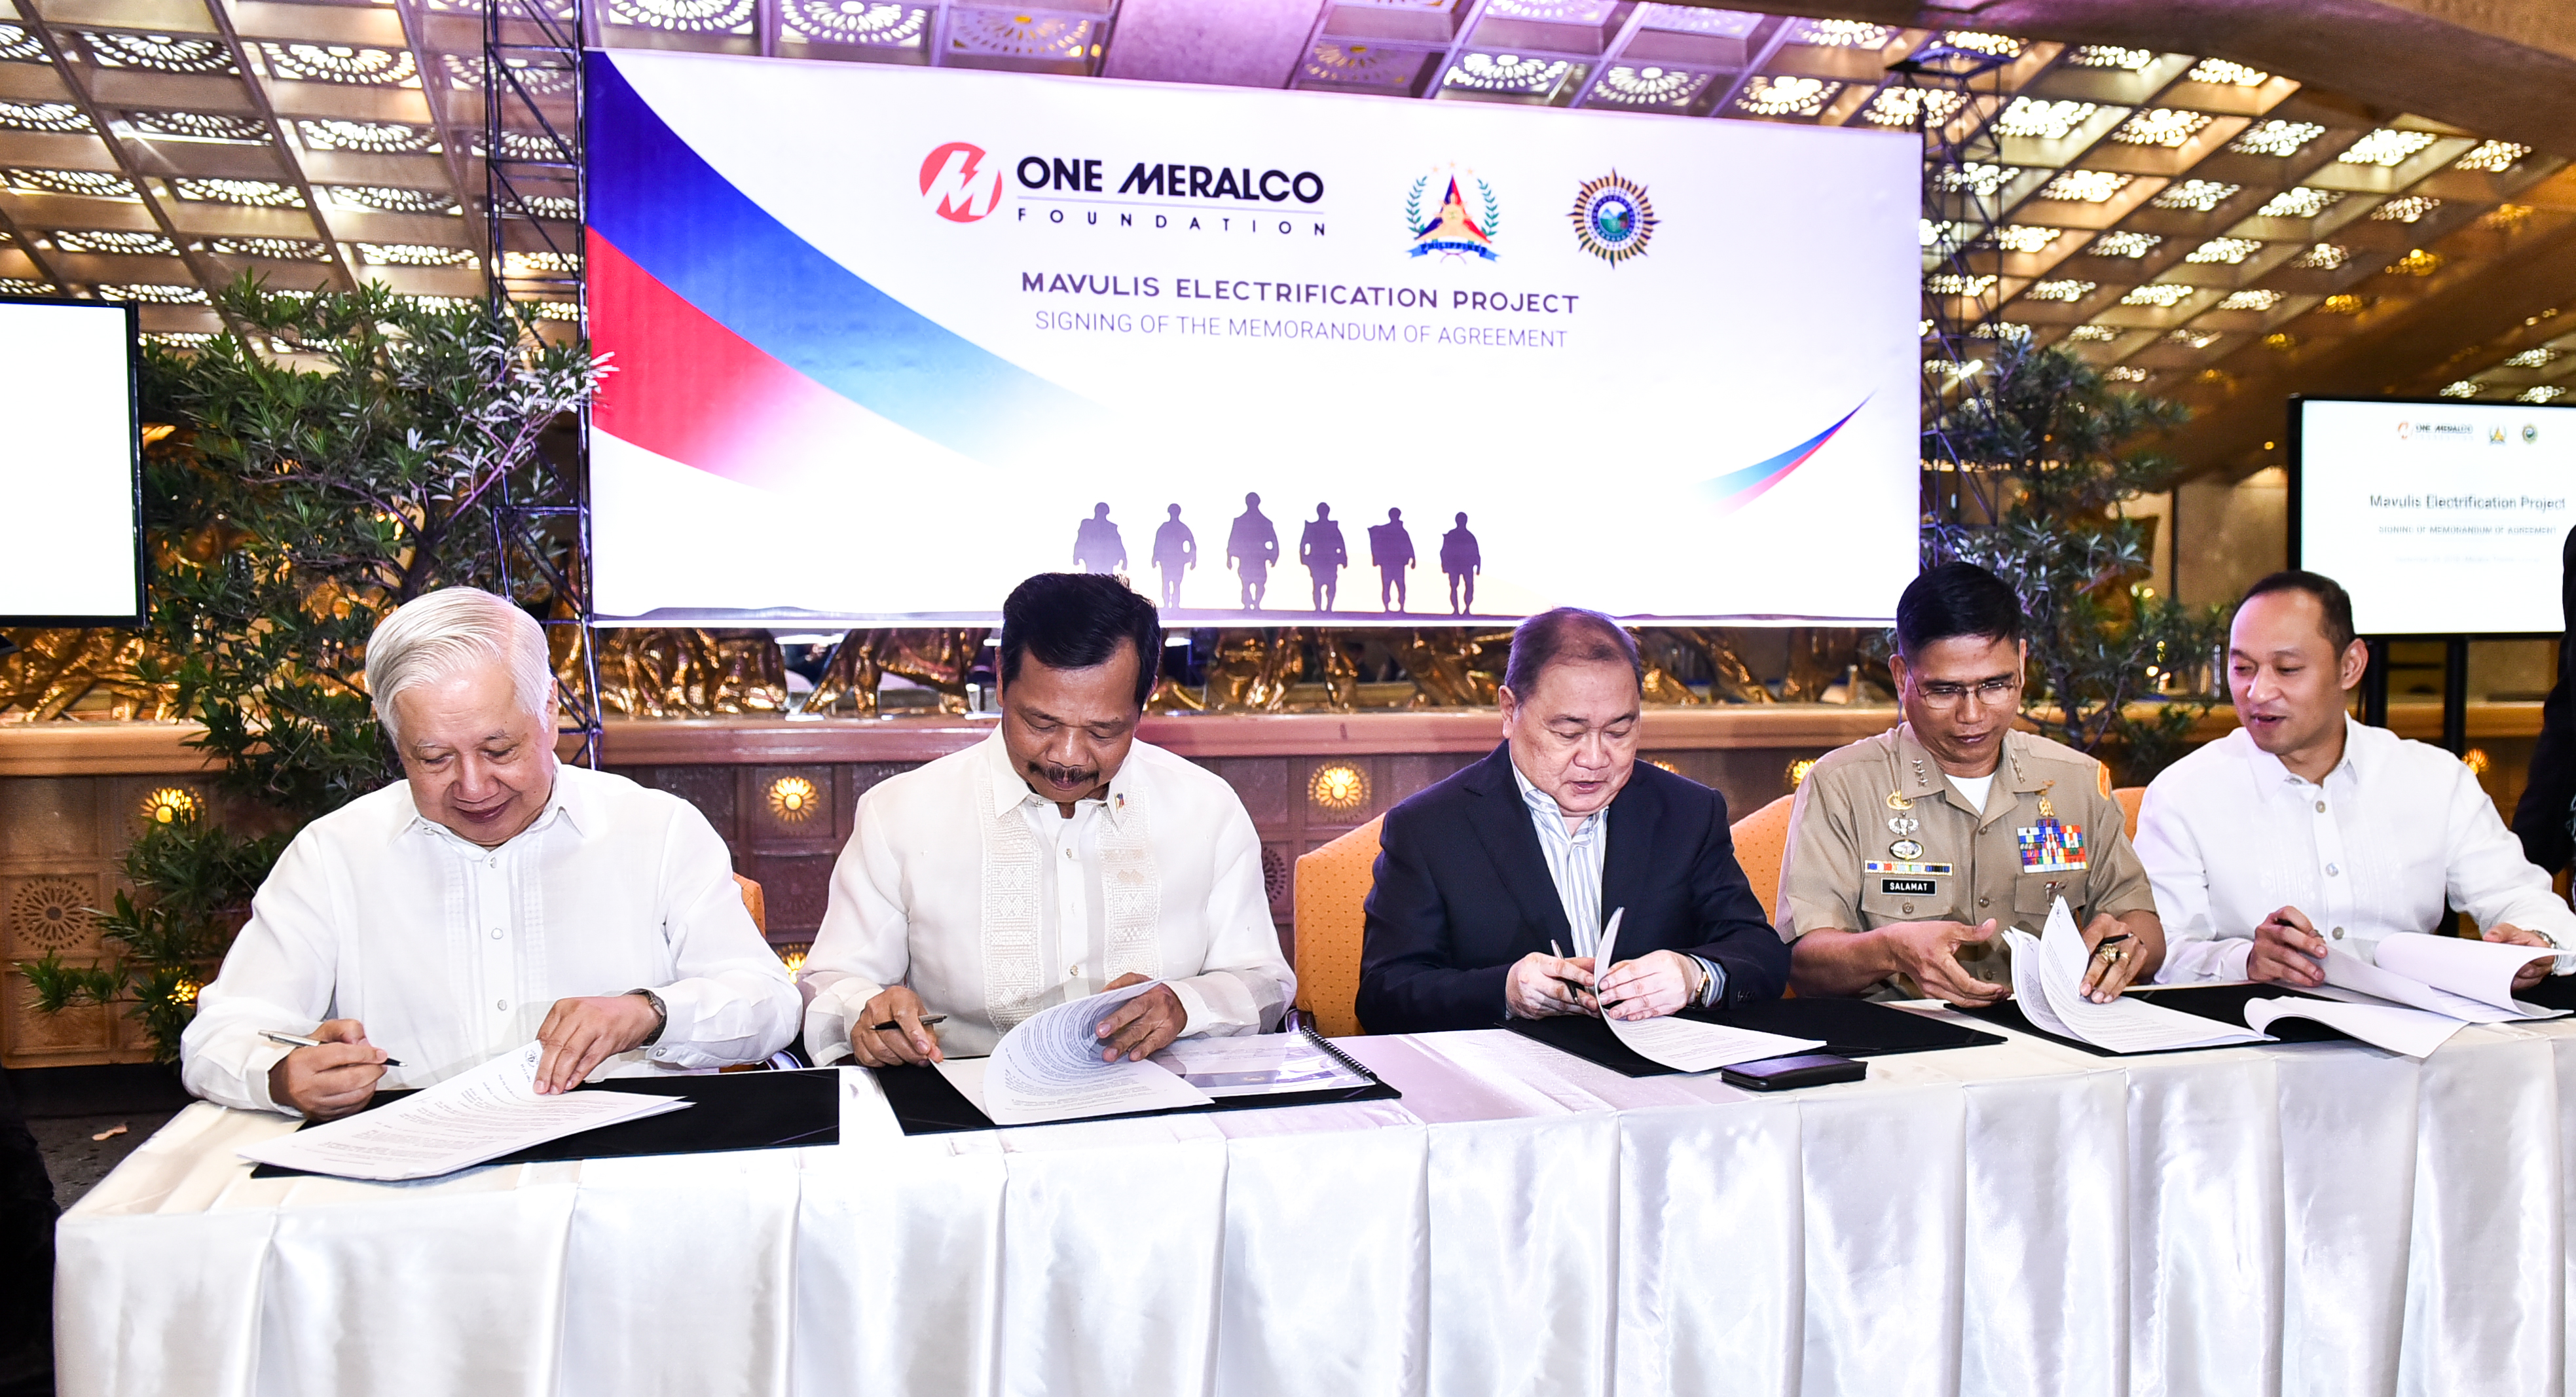 One Meralco Foundation and the Armed Forces of the Philippines seal their commitment to energize a fishermen's shelter which the military is building on Mavulis Island, the northernmost isle of Batanes.